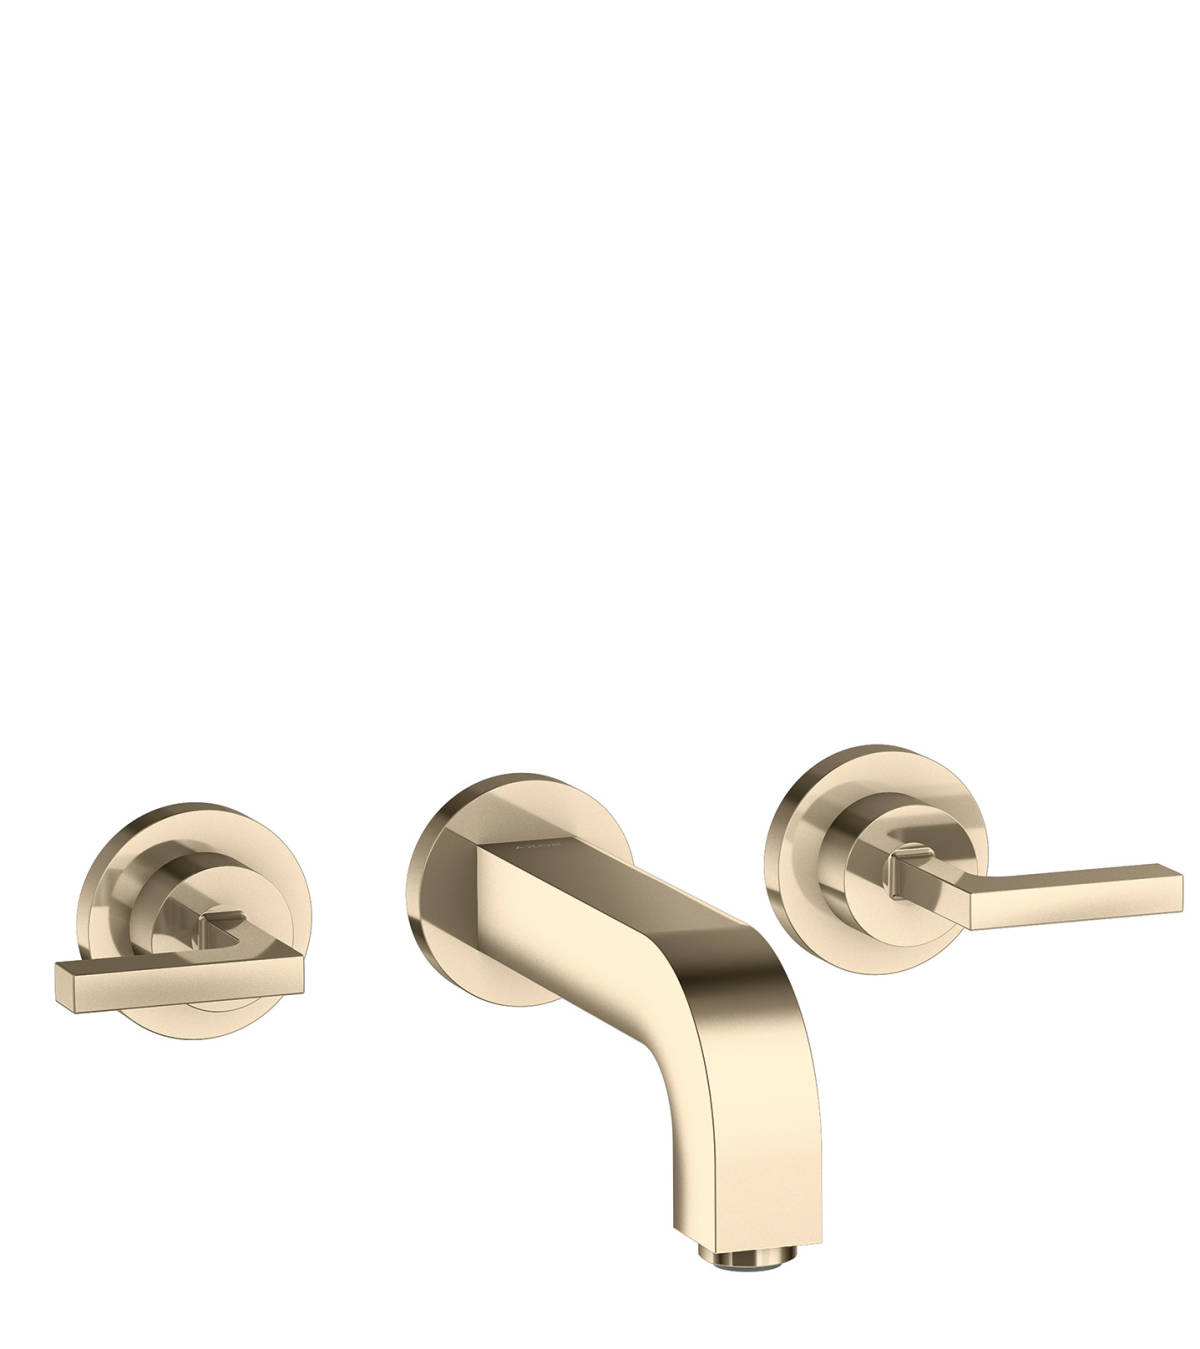 3-hole basin mixer for concealed installation wall-mounted with spout 162 mm, lever handles and escutcheons, Polished Nickel, 39315830